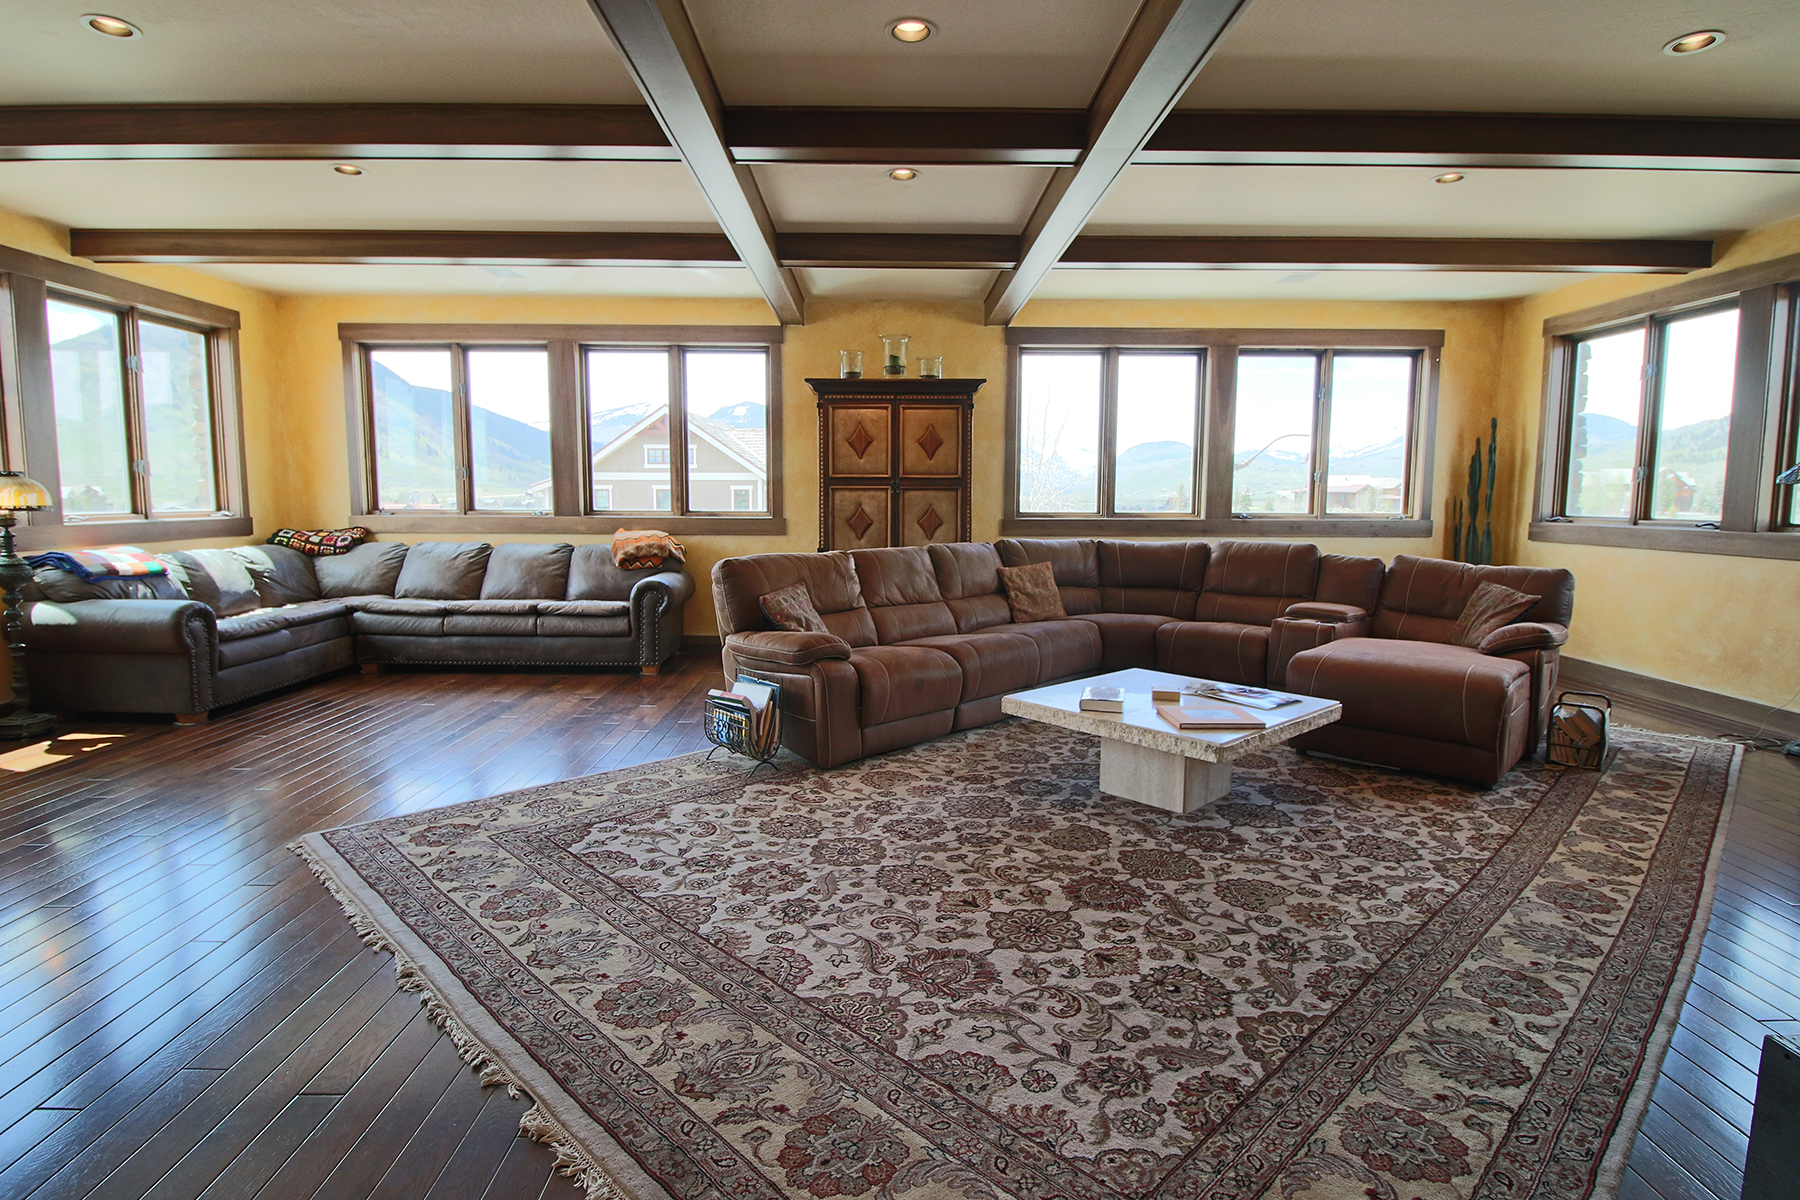 Single Family Home for Sale at Majestic Home 544 Larkspur Loop Crested Butte, Colorado, 81224 United States